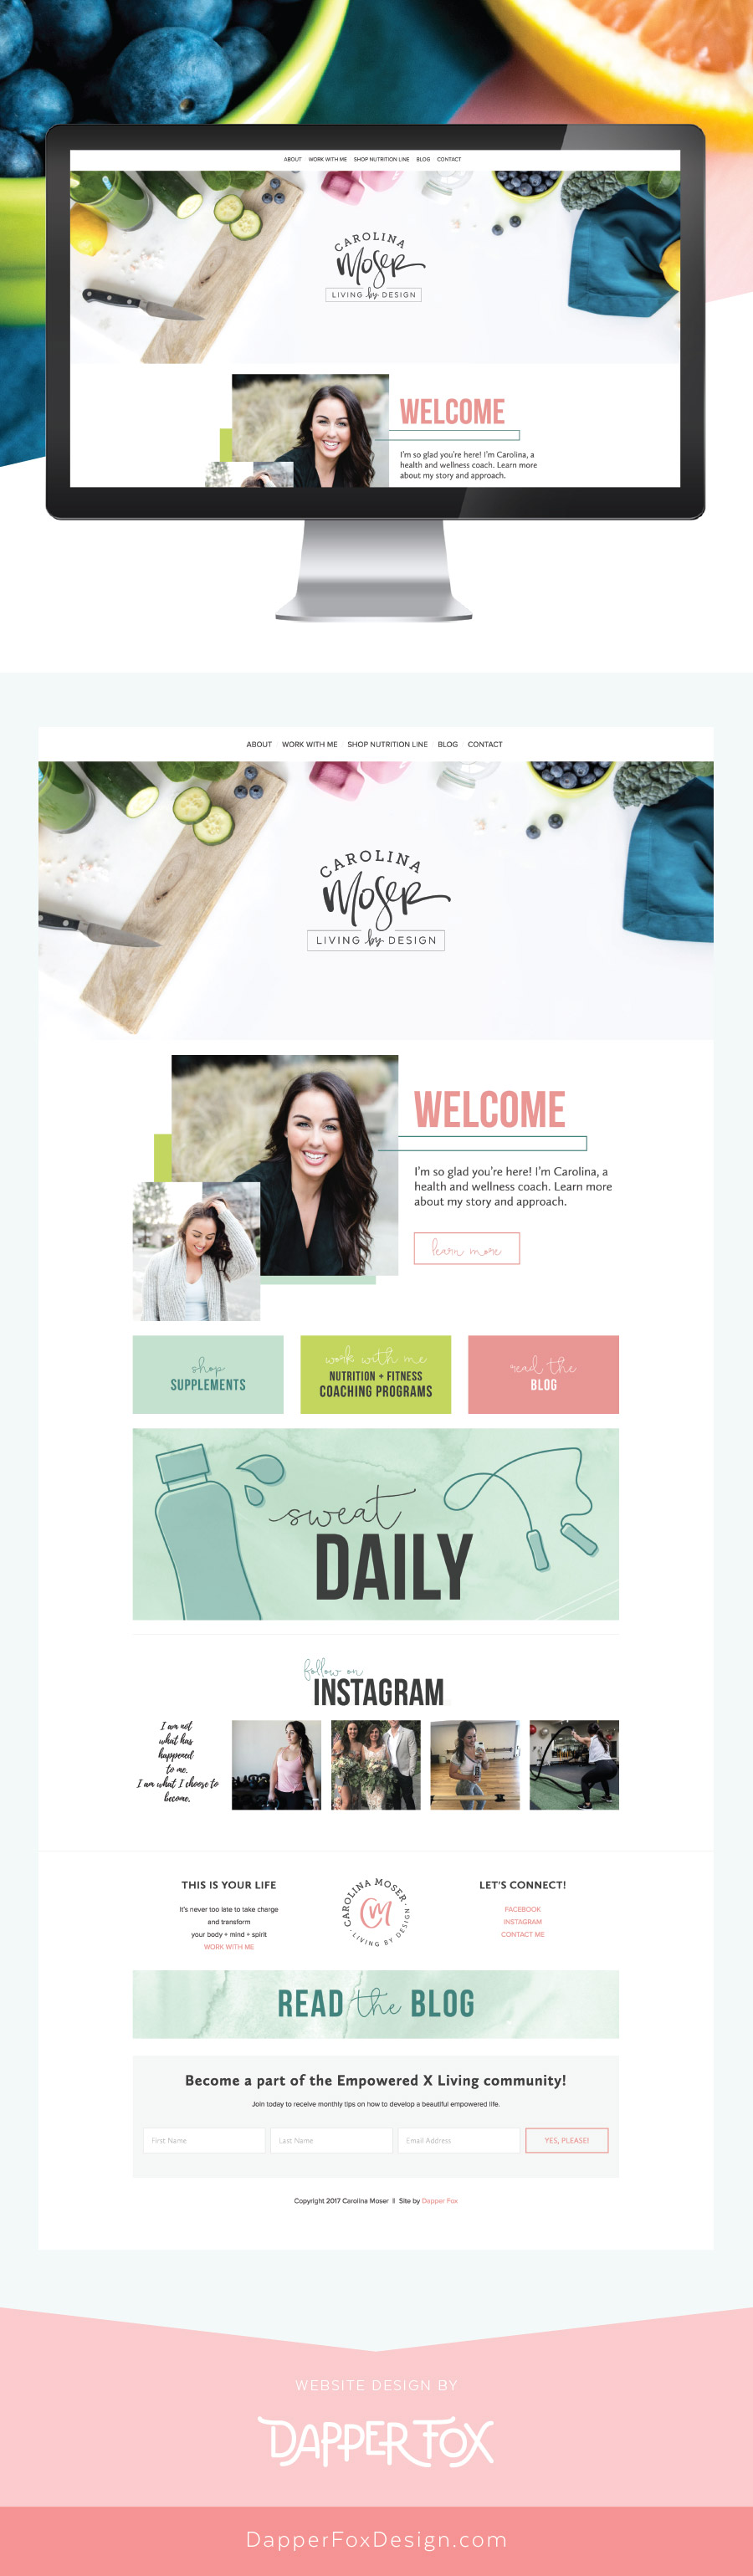 Squarespace Website Design - Carolina Moser Utah Squarespace Website Design and Branding by Dapper Fox Design